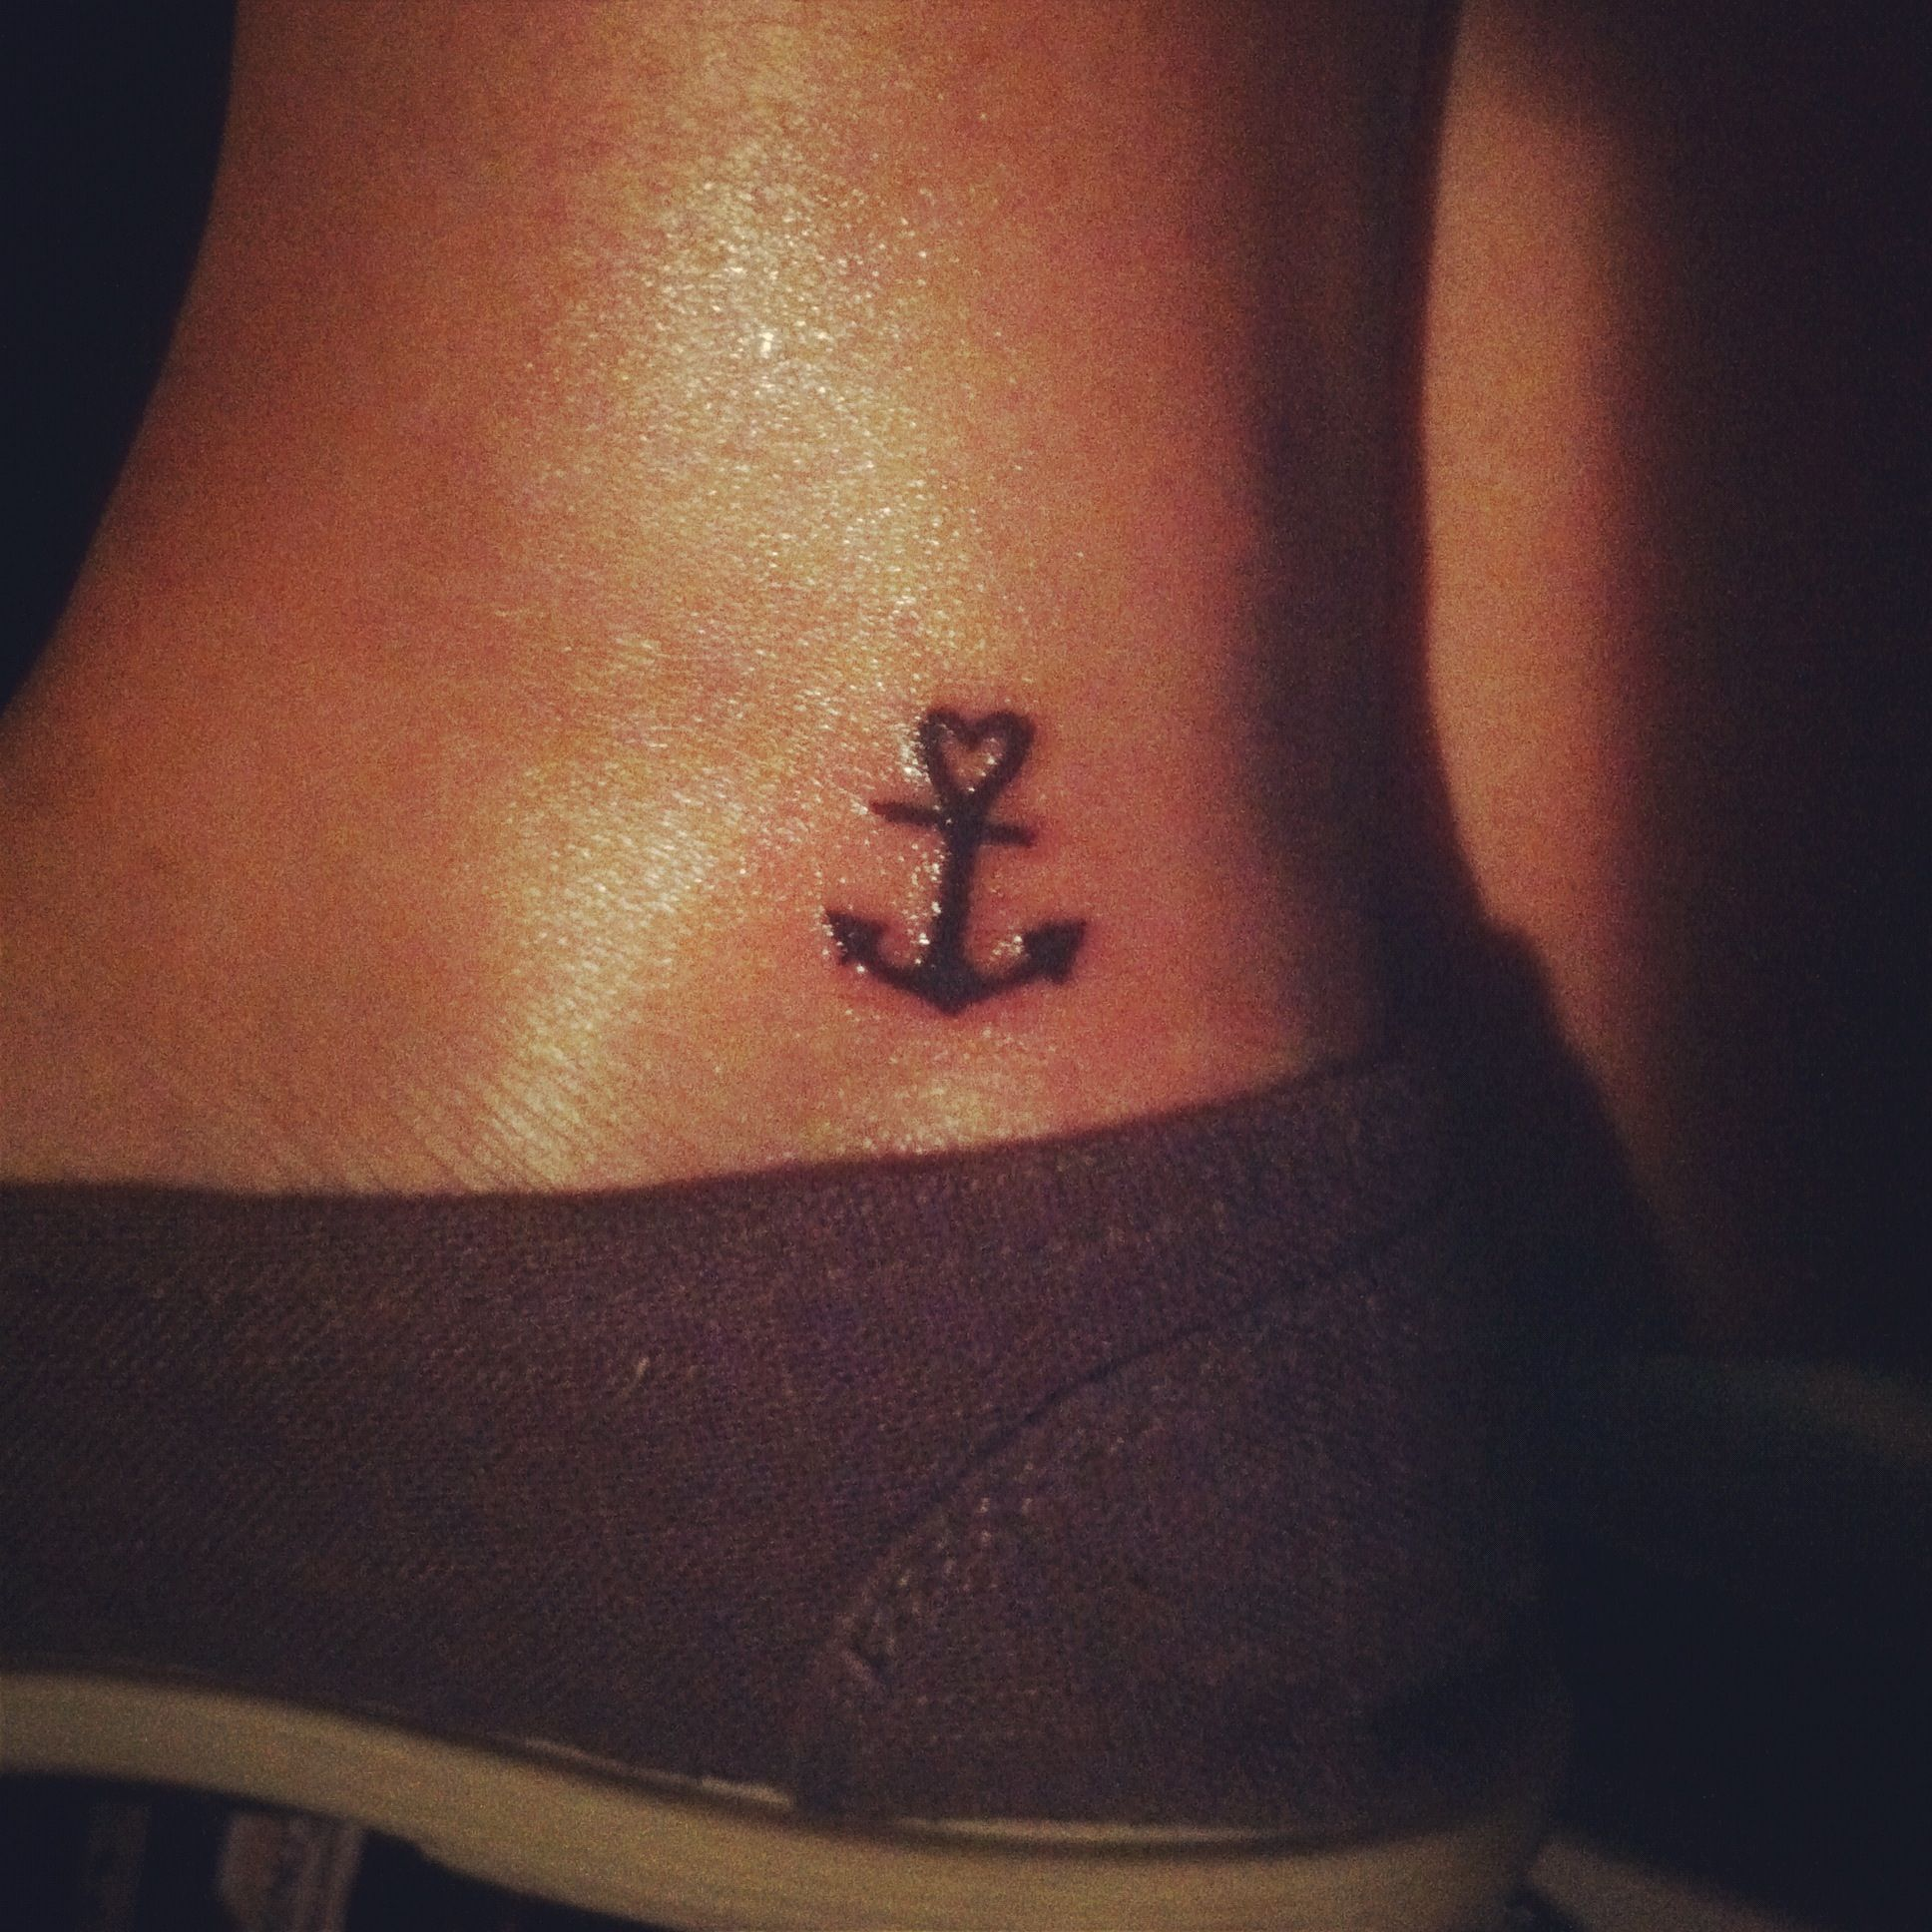 Small christian tattoo ideas for men iud love to have a small tattoo like this  tattoo  pinterest